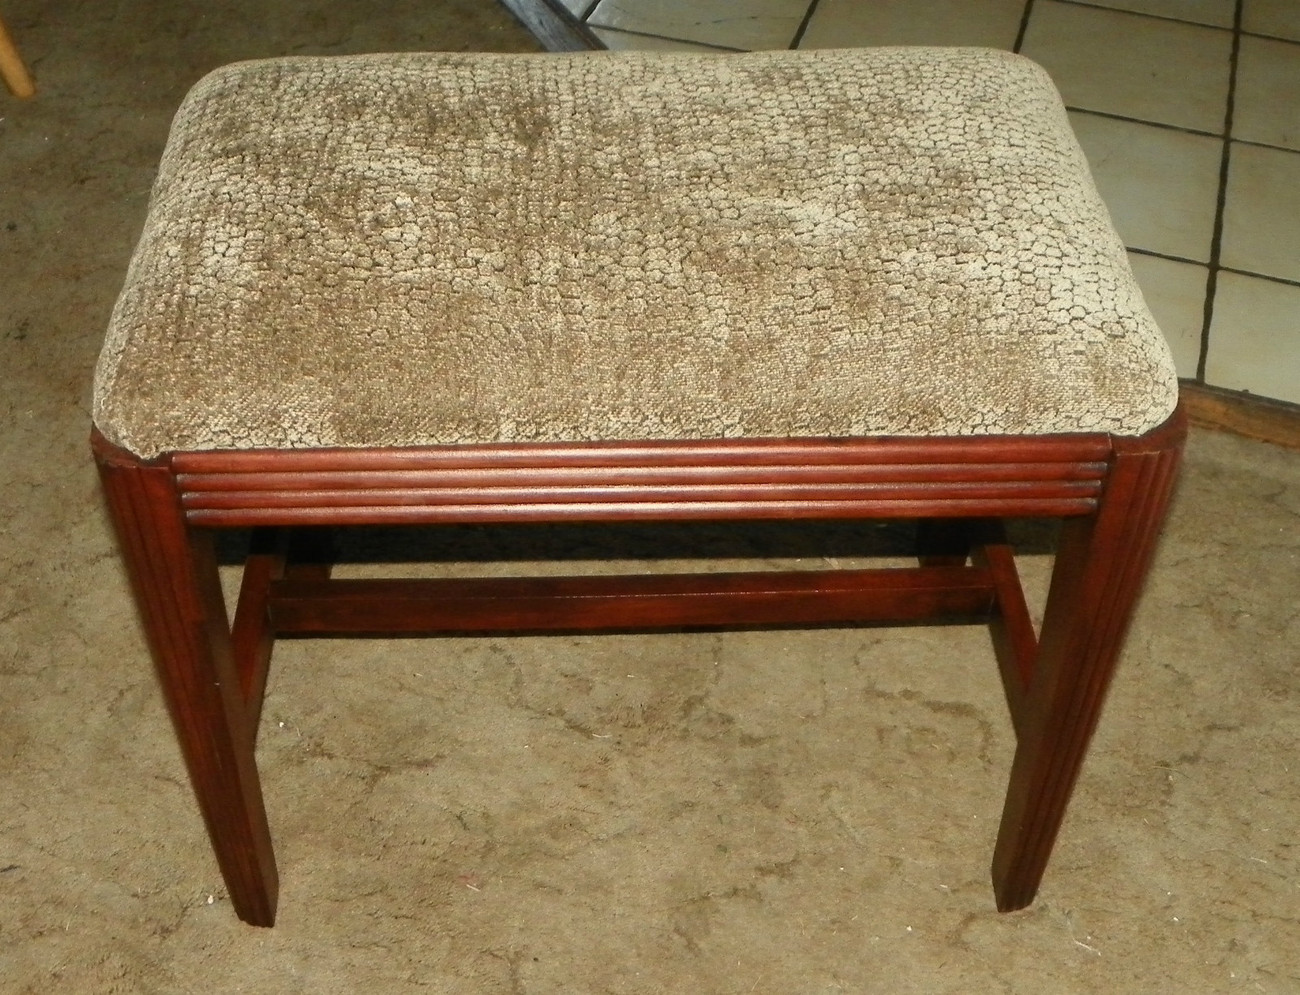 Primary image for Fluted Mahogany Taupe Chenille Print Vanity Bench   (JLC-BN87)